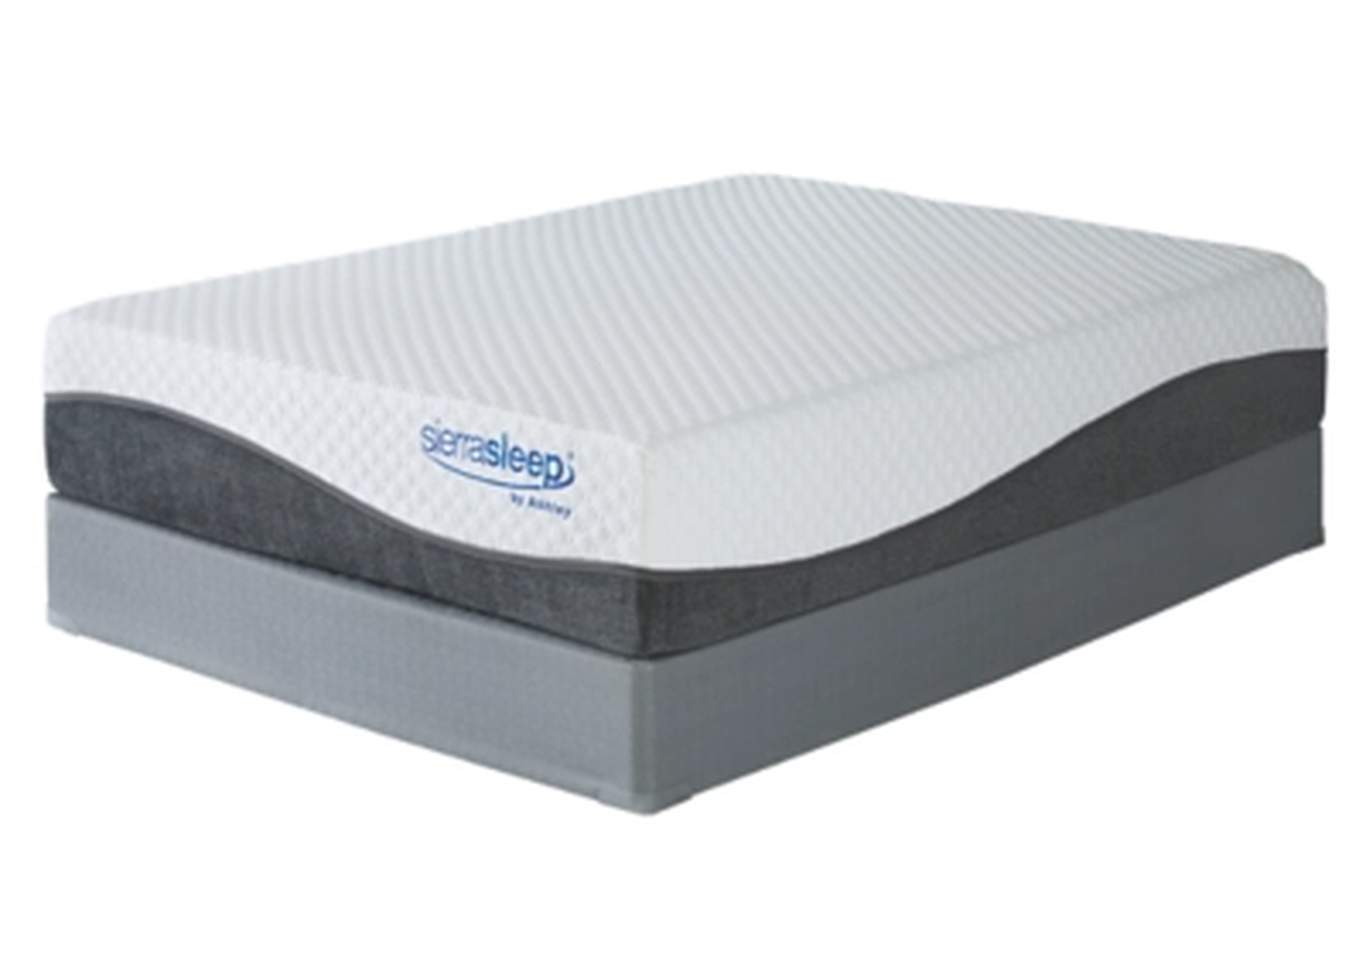 Mygel Hybrid 1300 White Queen Mattress,Sierra Sleep by Ashley